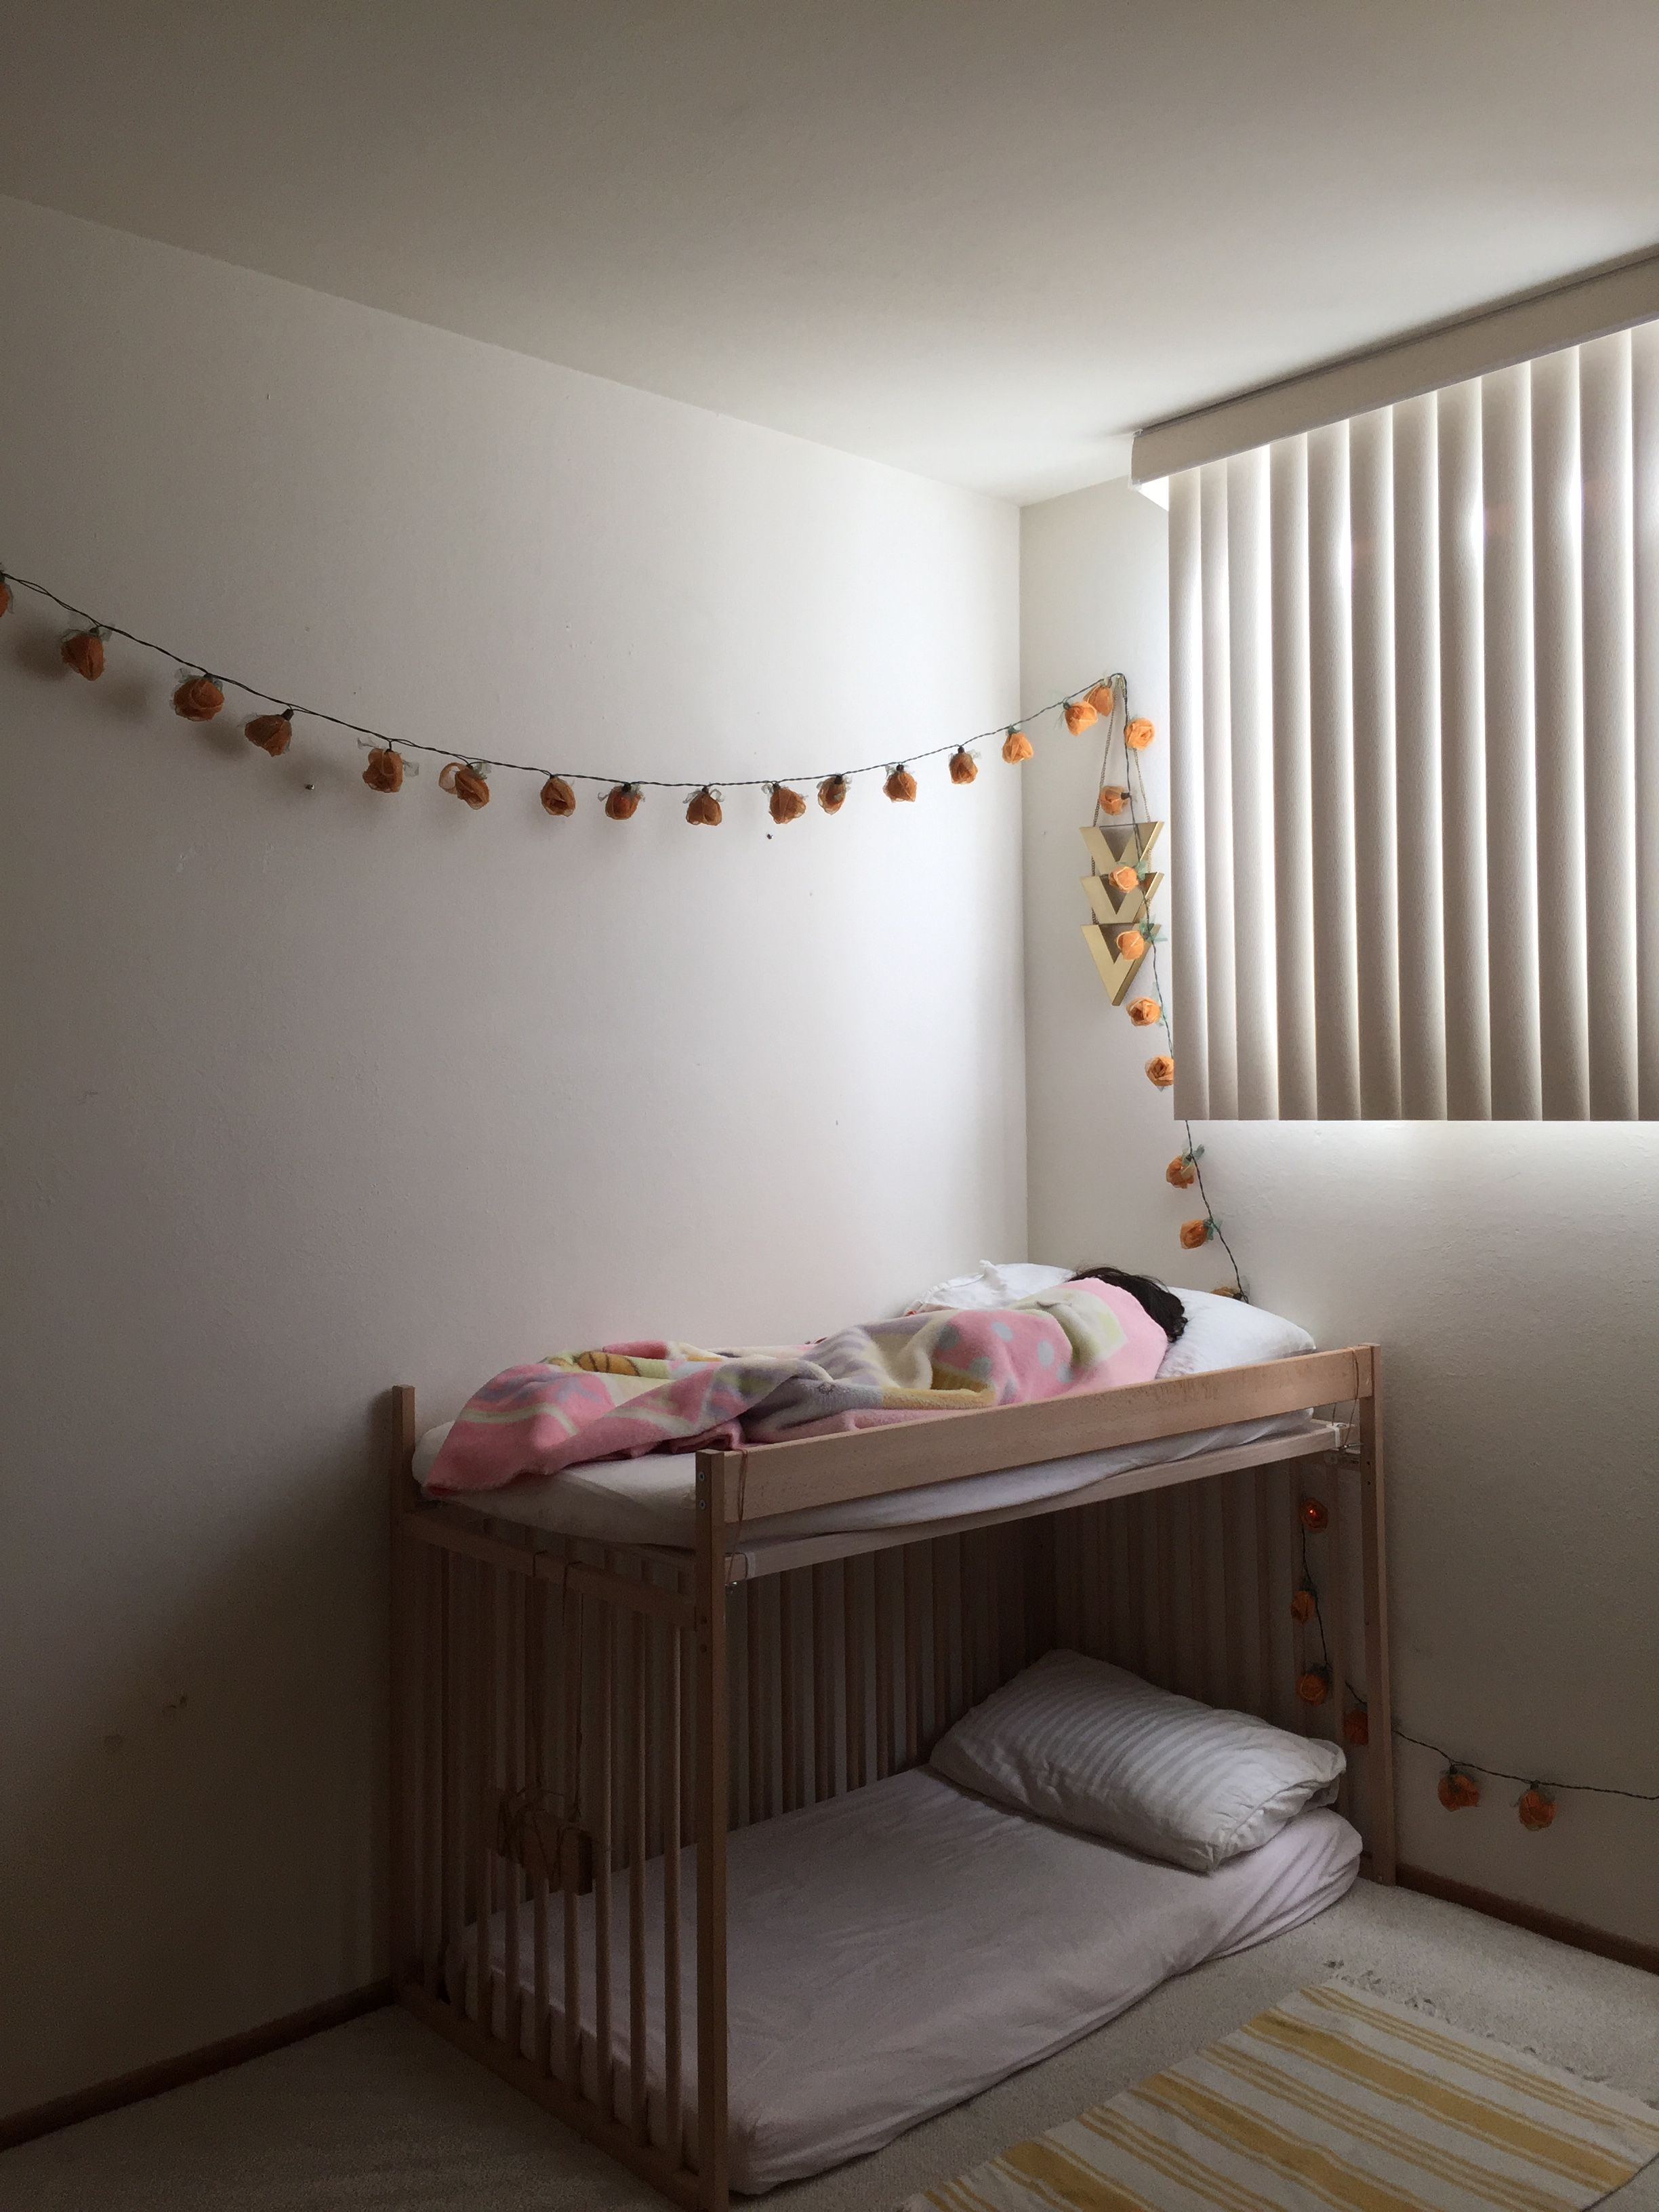 Bunk Bed Ikea Hack Turn Ikea Crib Into A Bunk Bed Toddler Bed Ikea Baby Room Toddler Bed Ikea Crib